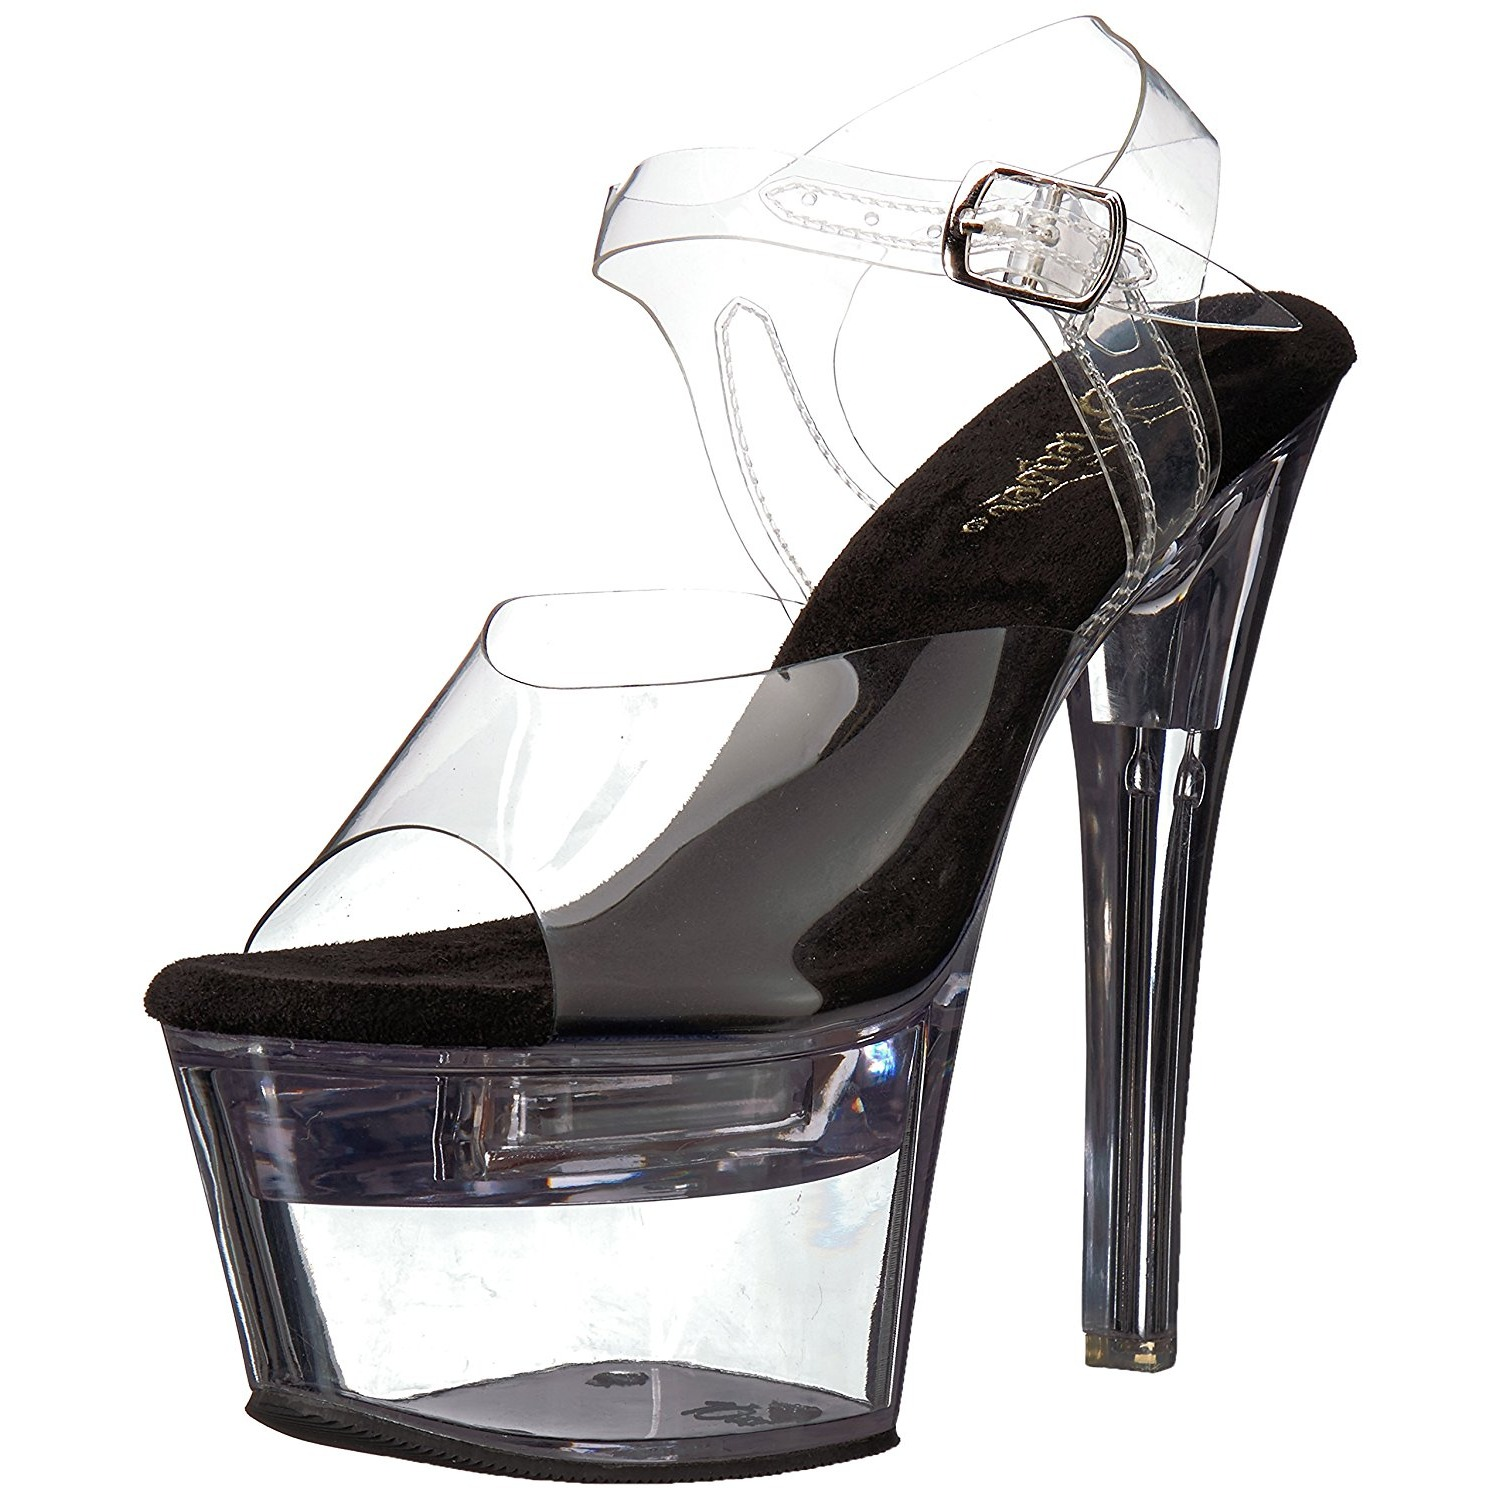 Black 18 cm FLASHDANCE 708 LED light platform stripper high heel shoes